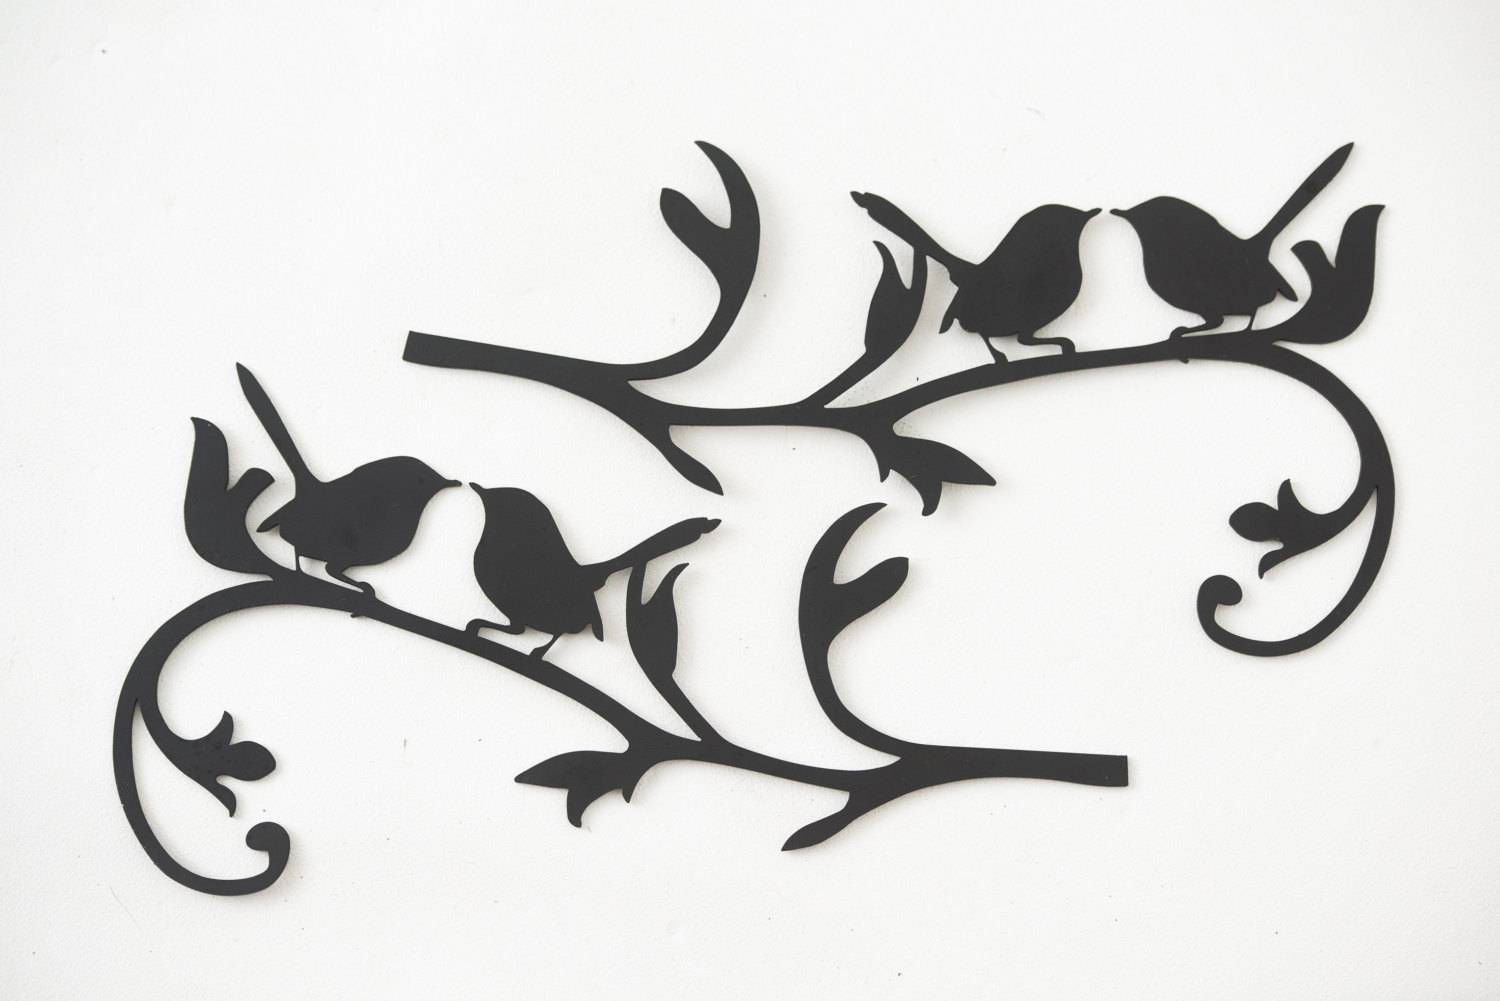 Wall Art Designs: Metal Bird Wall Art Hand Drawn And Laser Cut Pertaining To Most Current Metal Wall Art Branches (View 17 of 20)